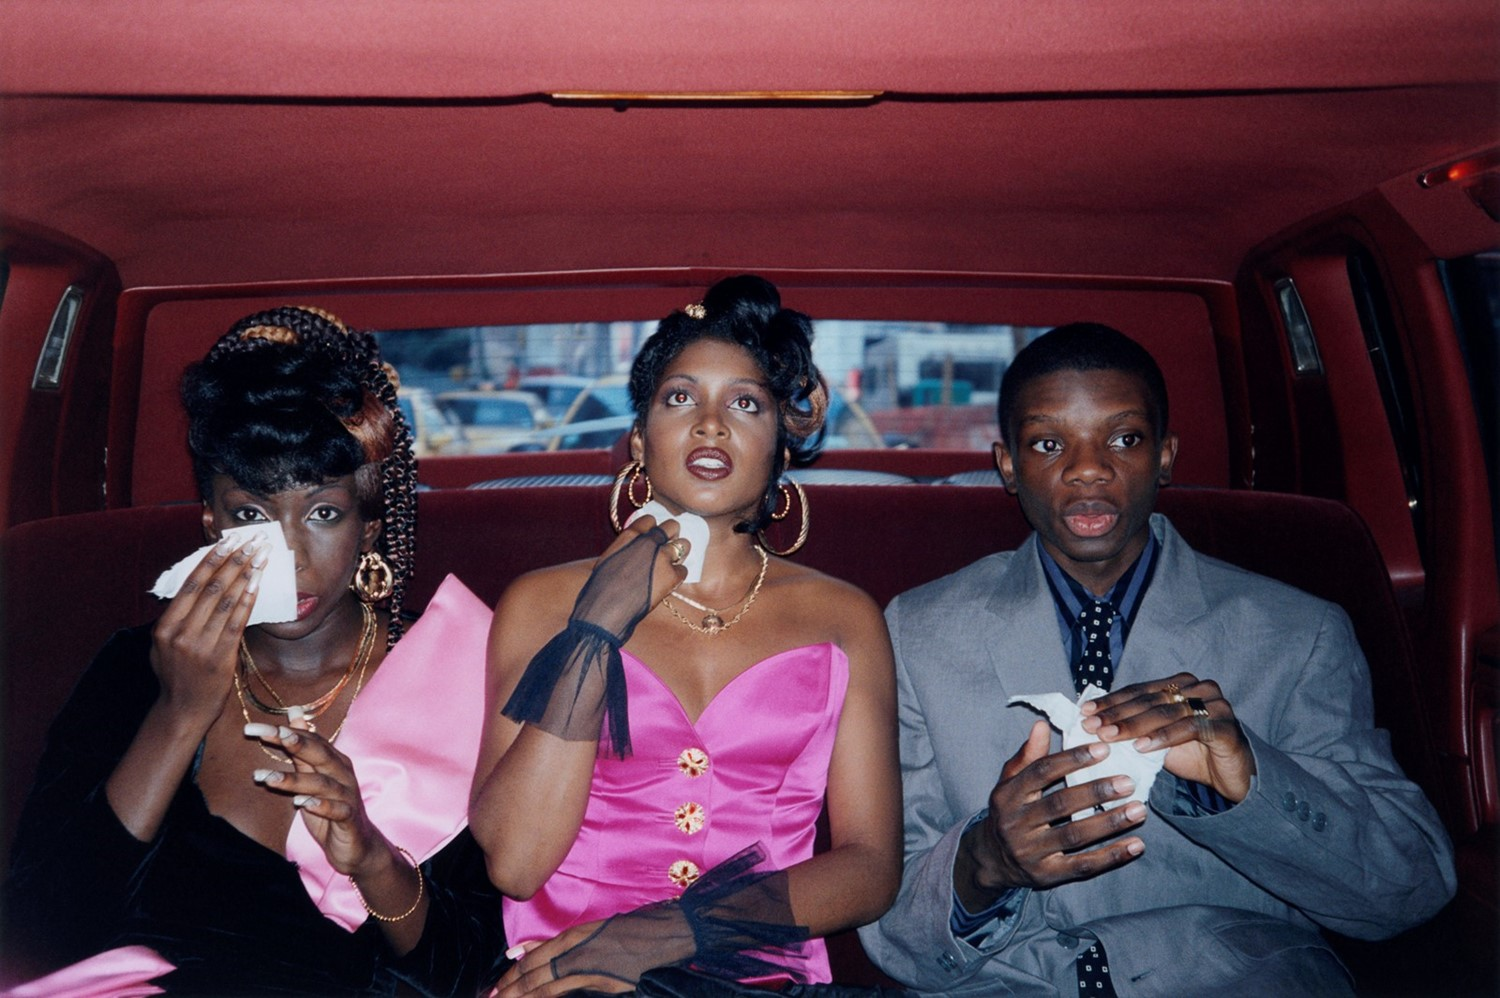 Prom for Visionaire, New York, 1996